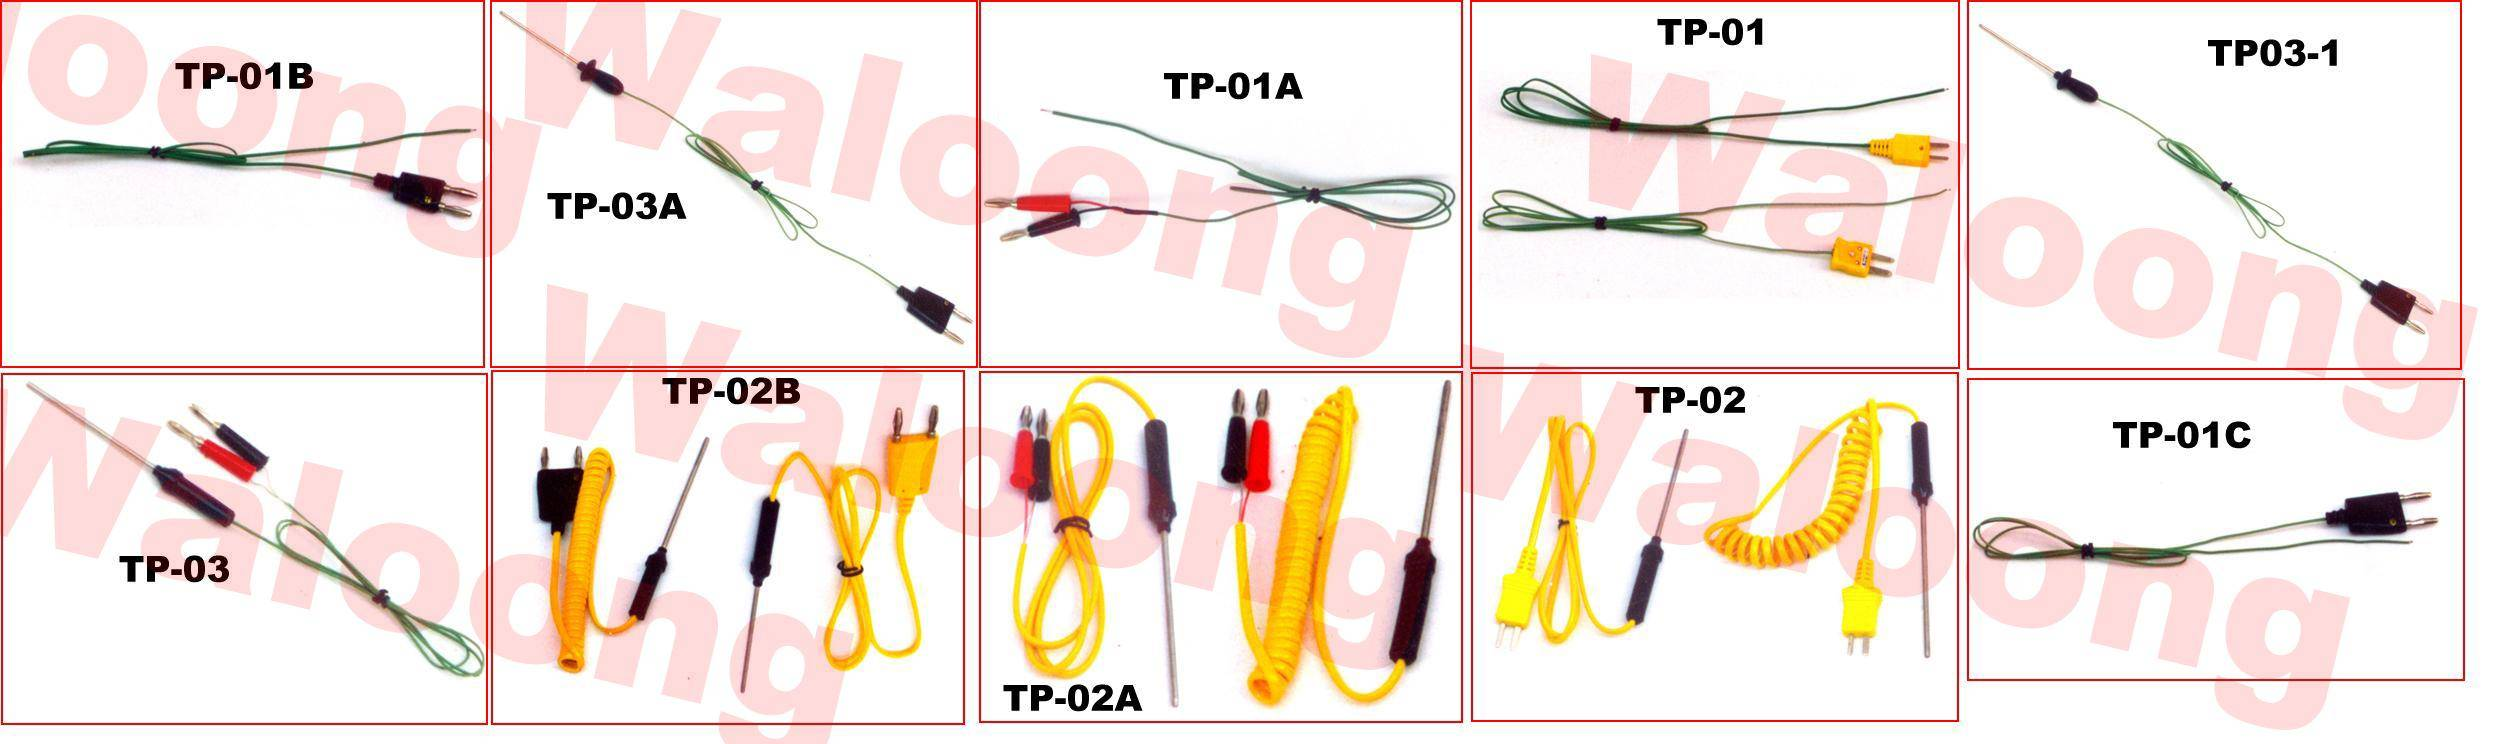 Spercial Thermocouple-2